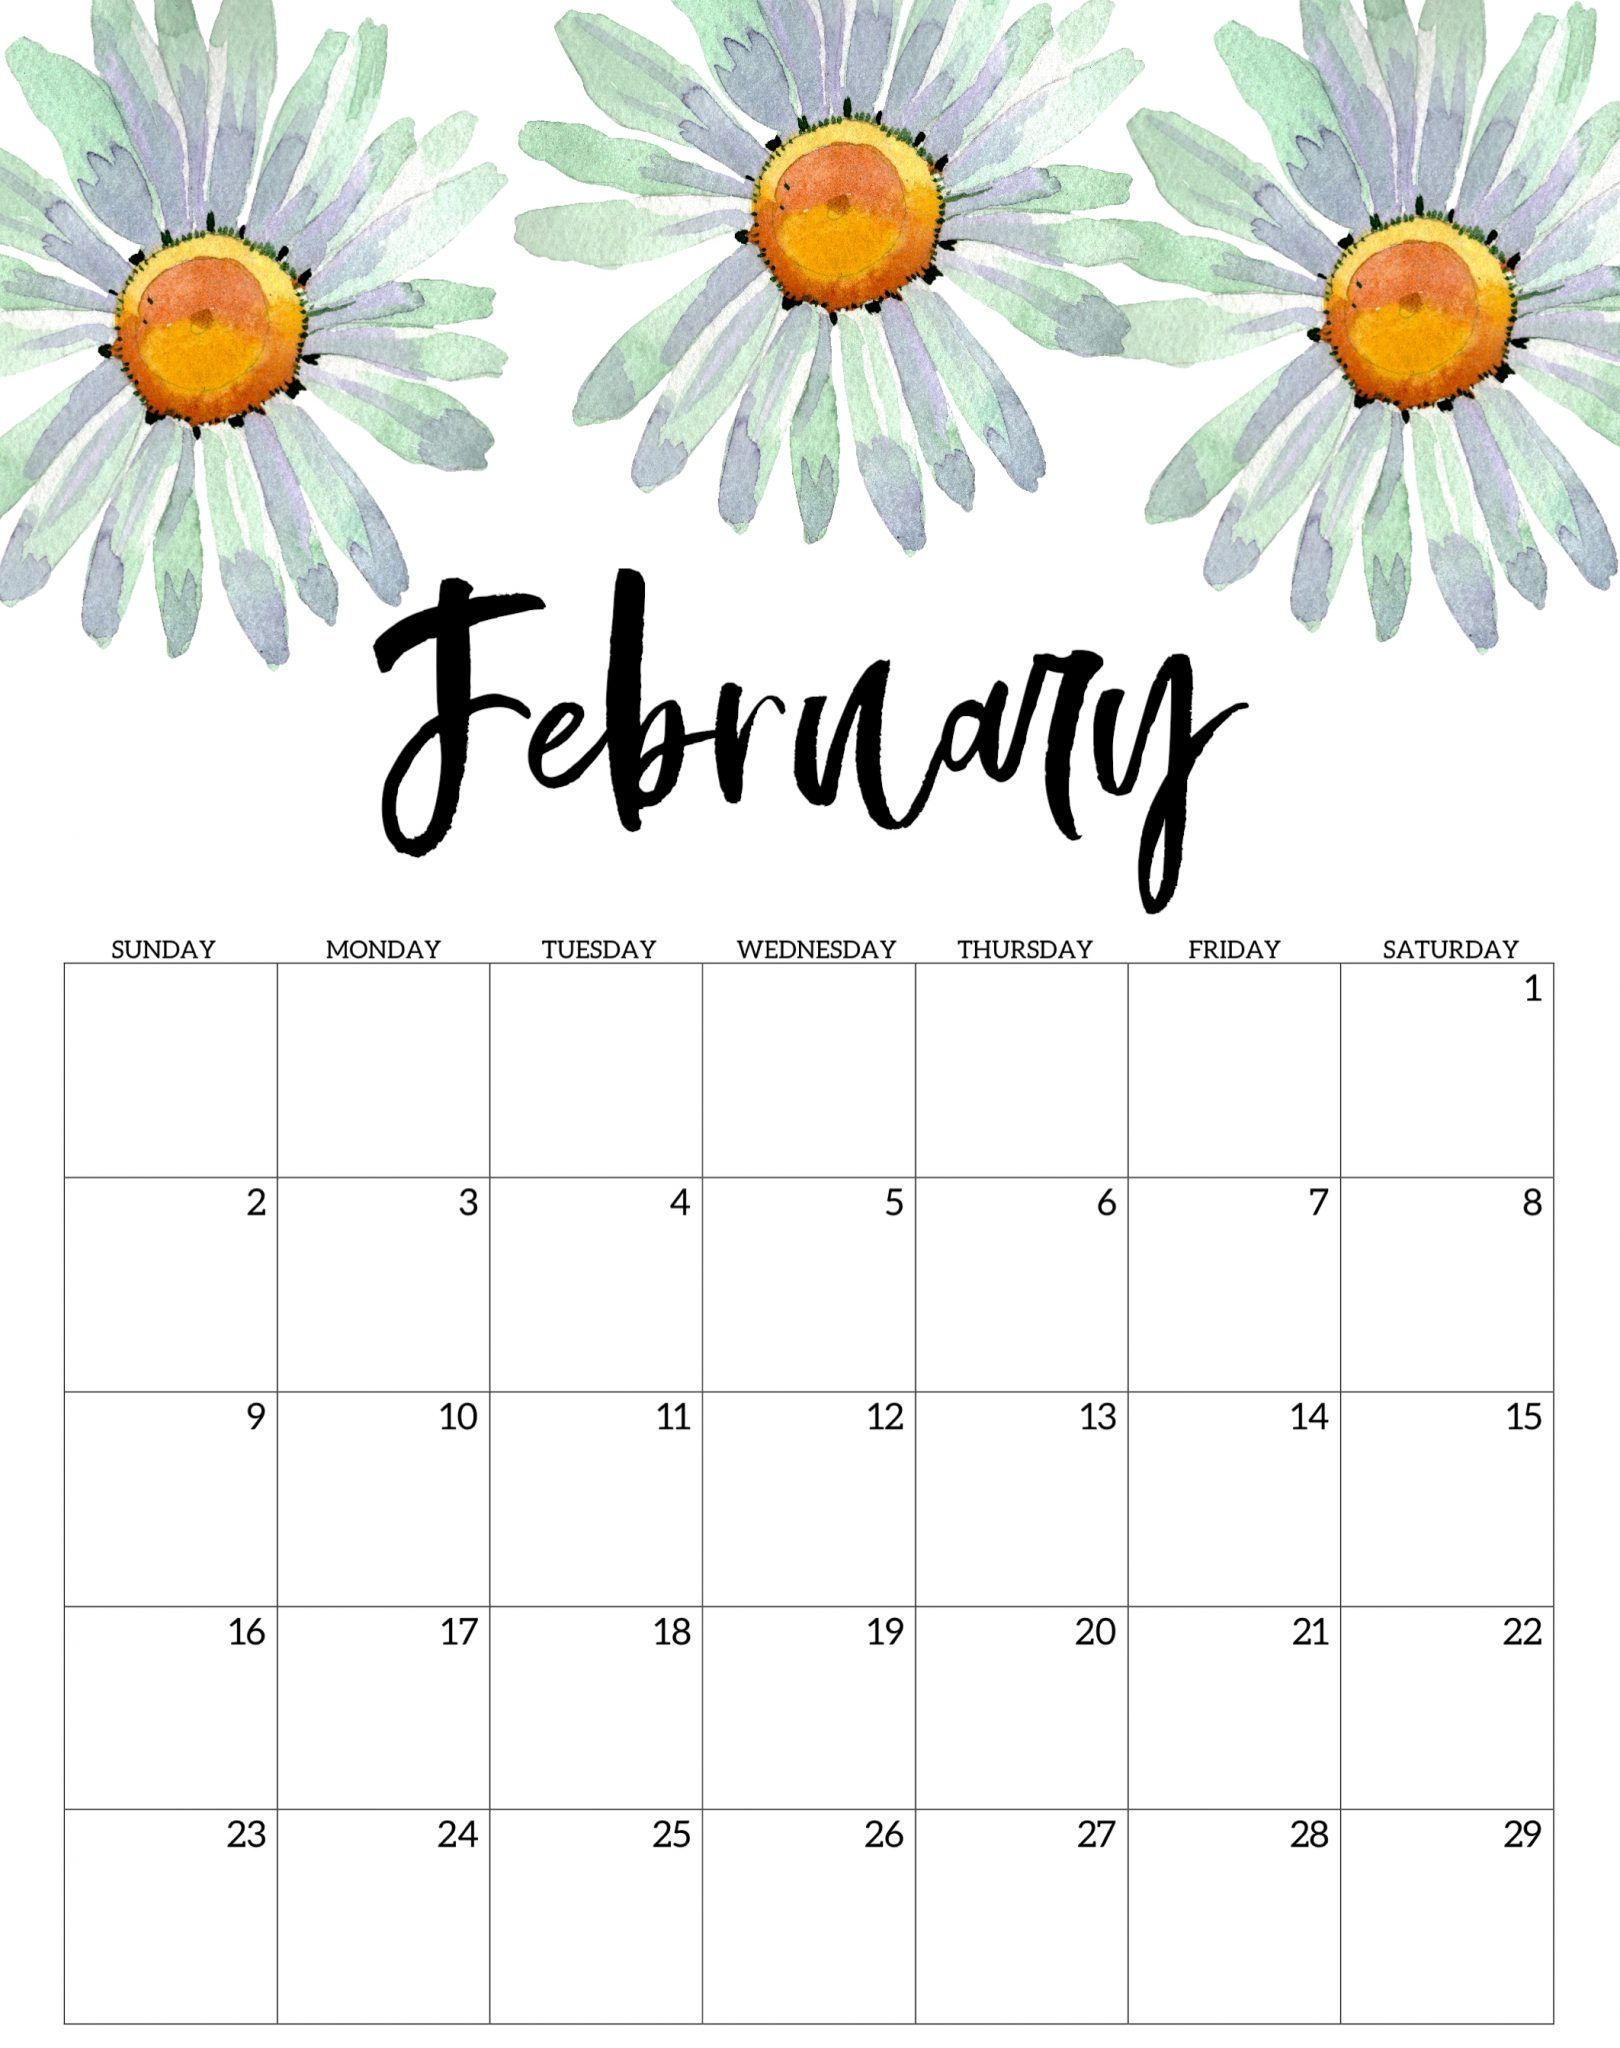 February 2020 Printable Calendar In Pdf Word Excel With Holidays